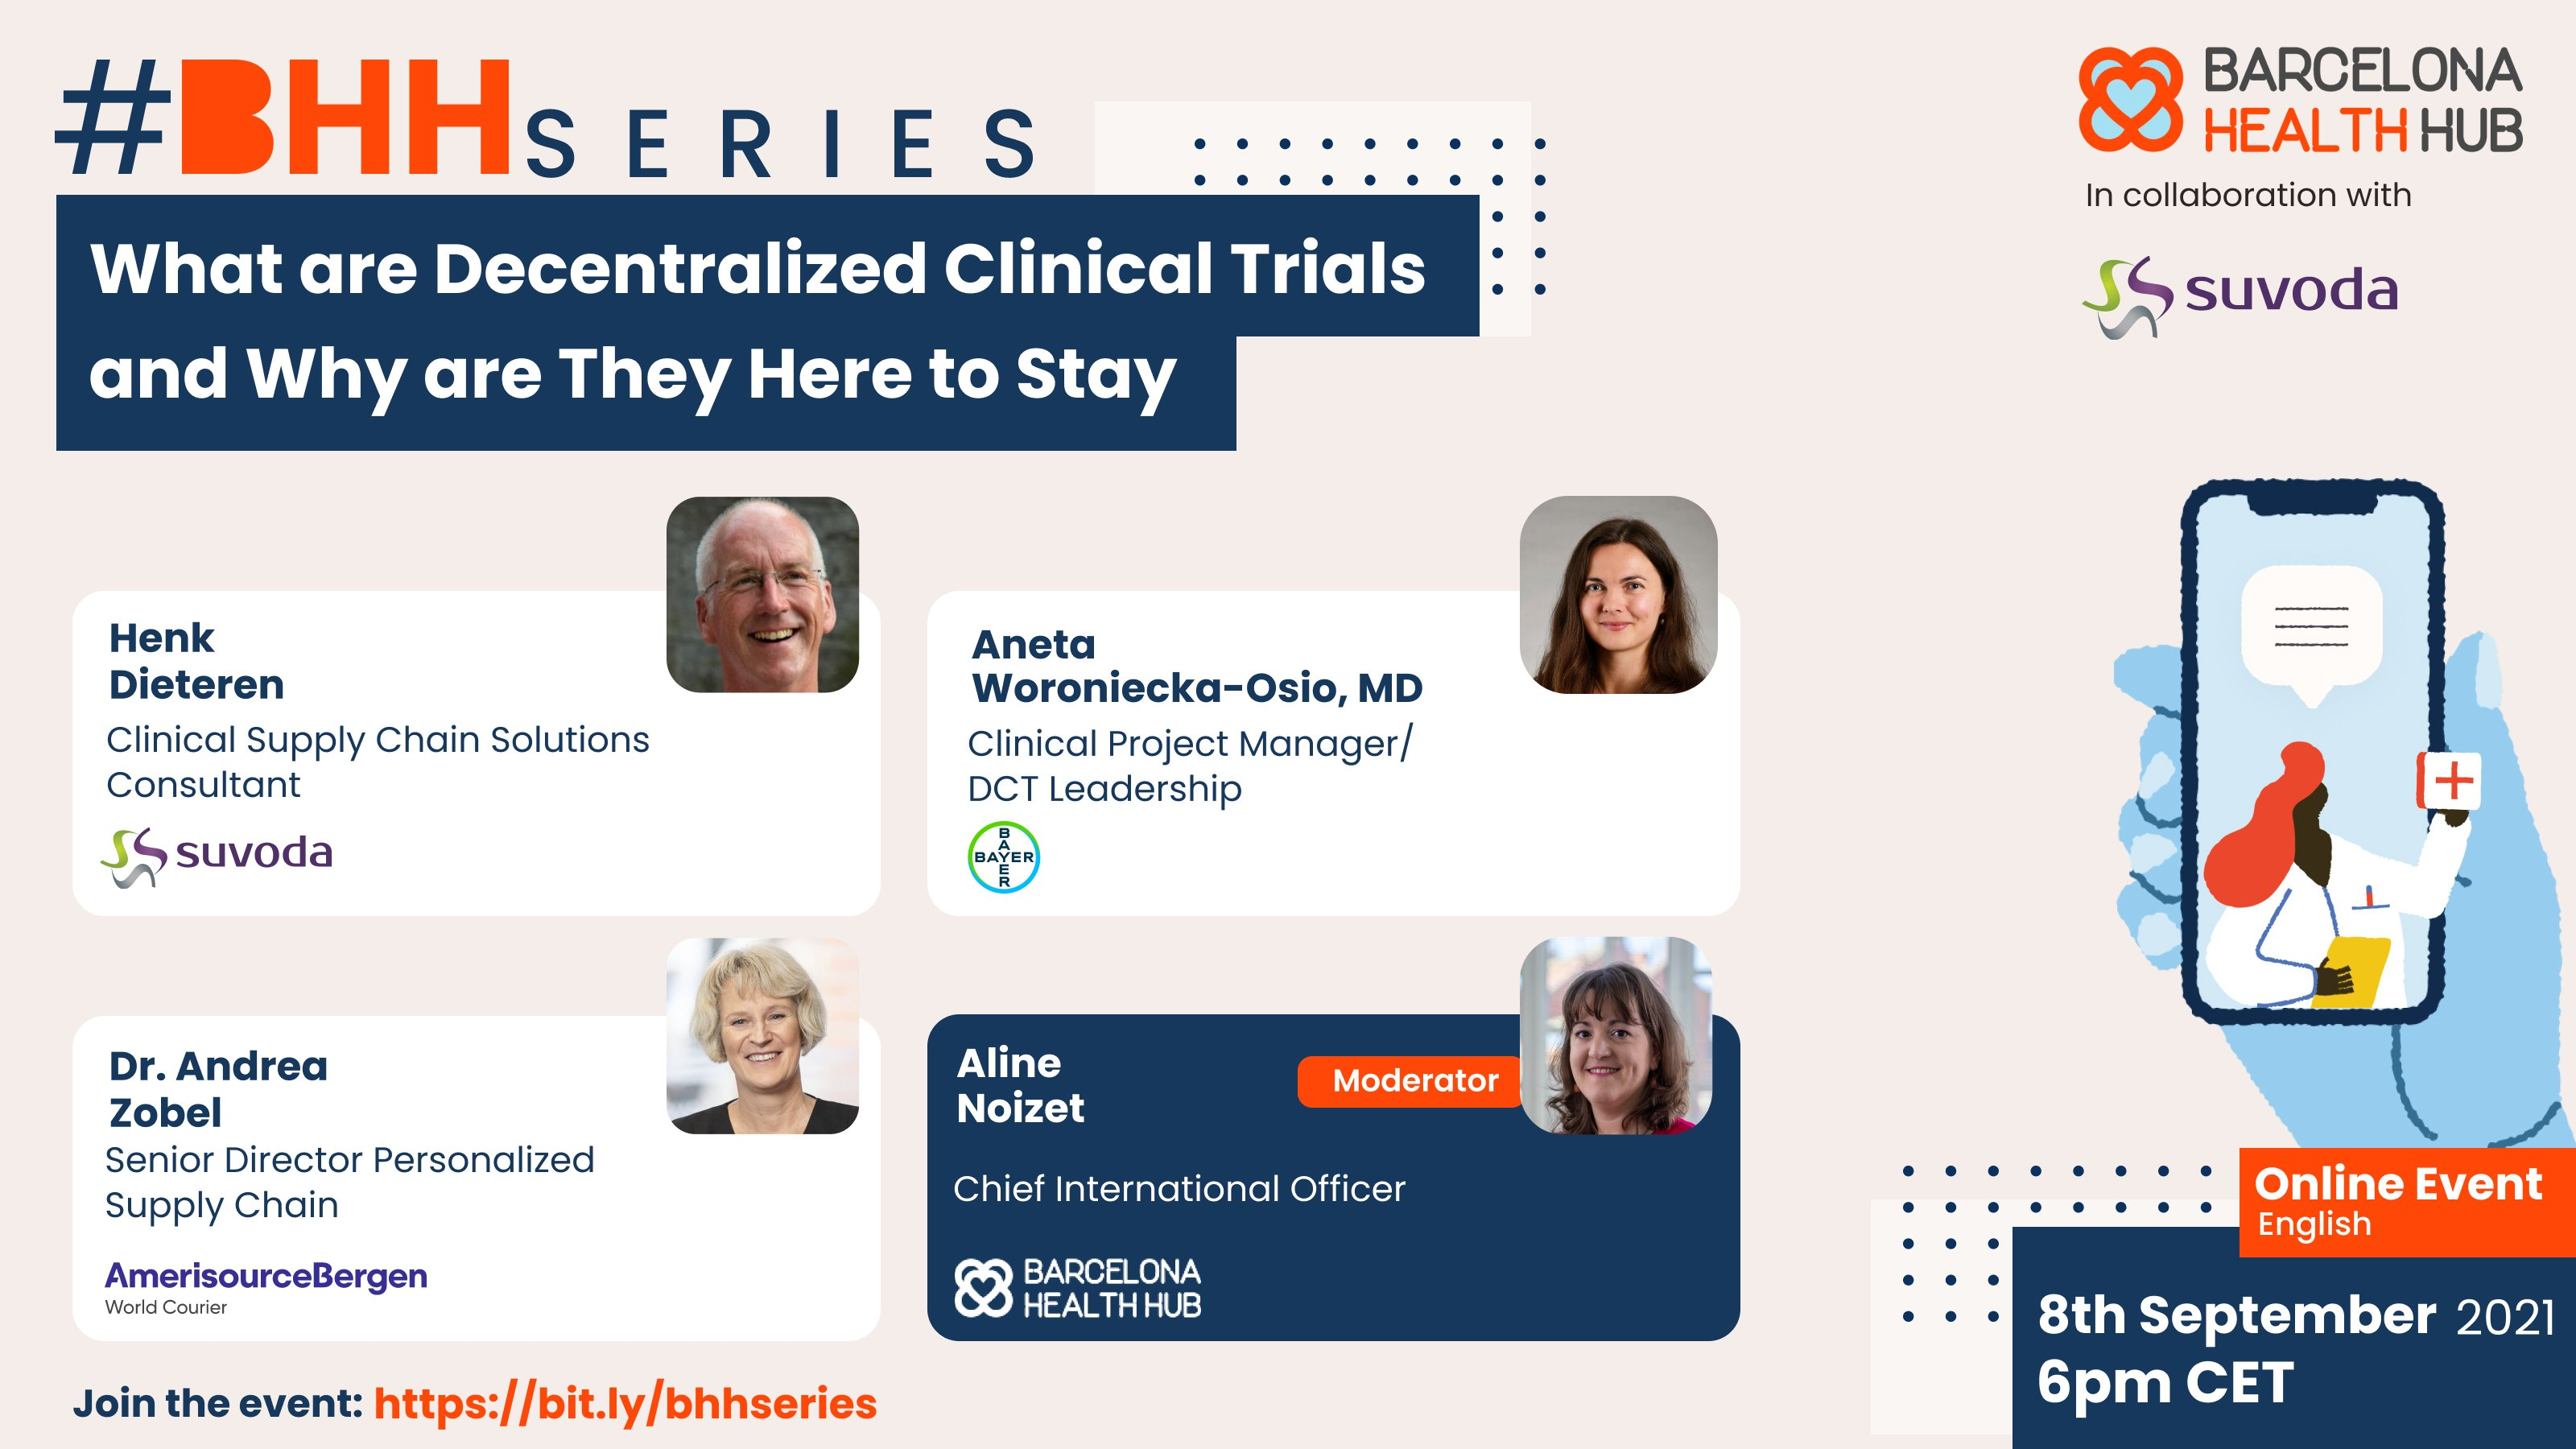 What are Decentralized Clinical Trials and Why are They Here to Stay